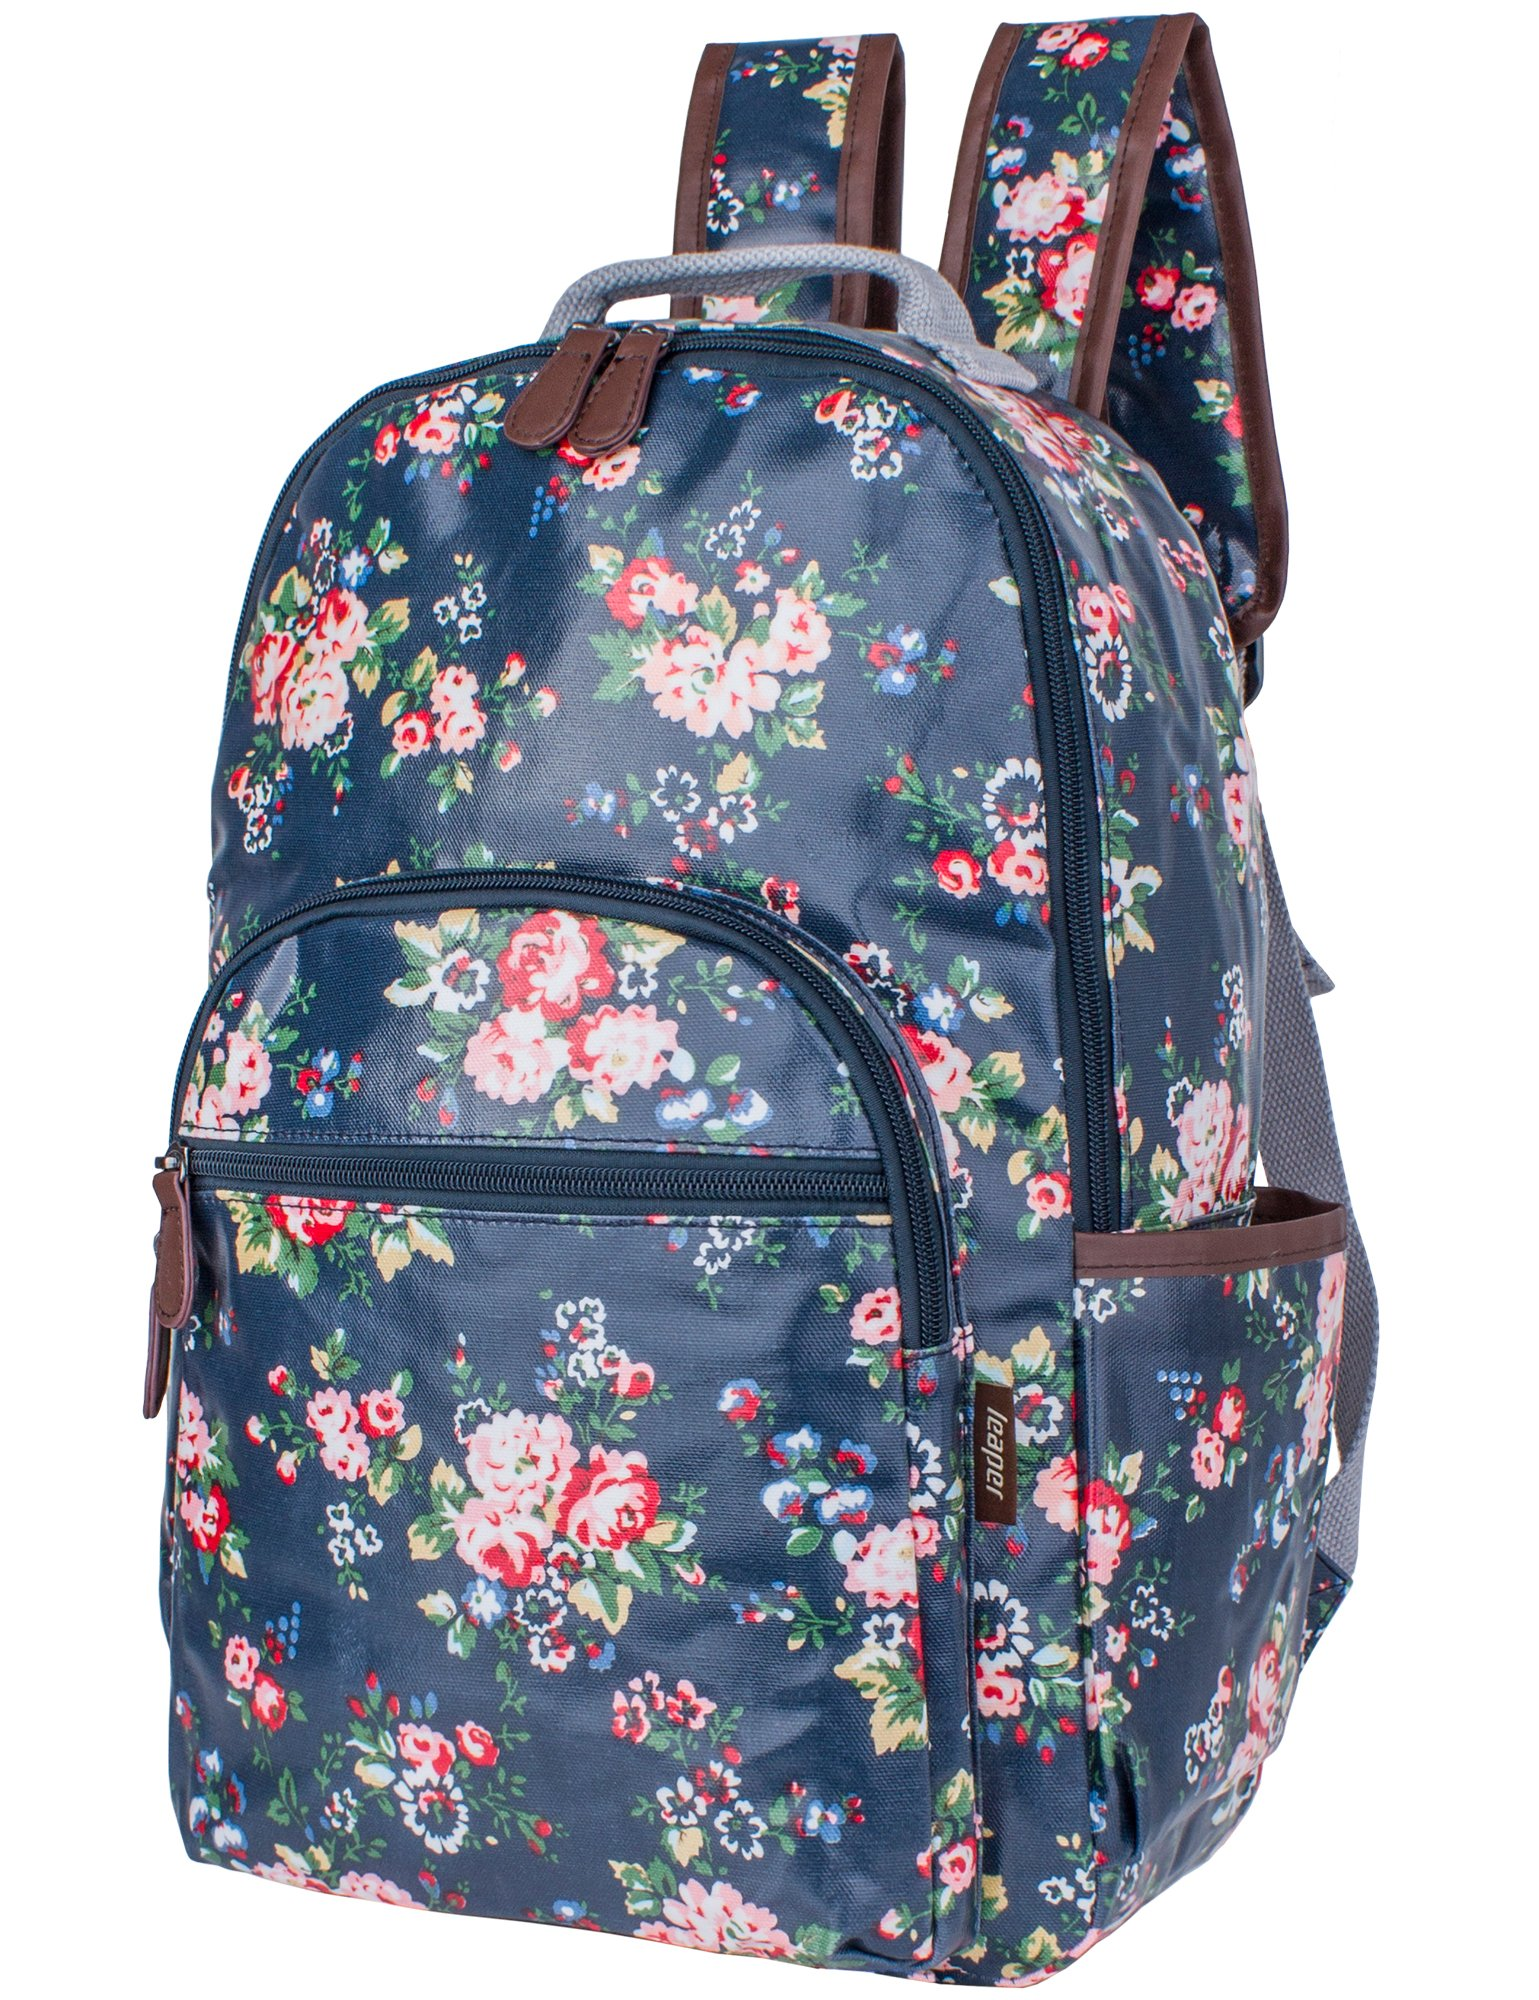 school bookbags for girls floral backpack college bags women